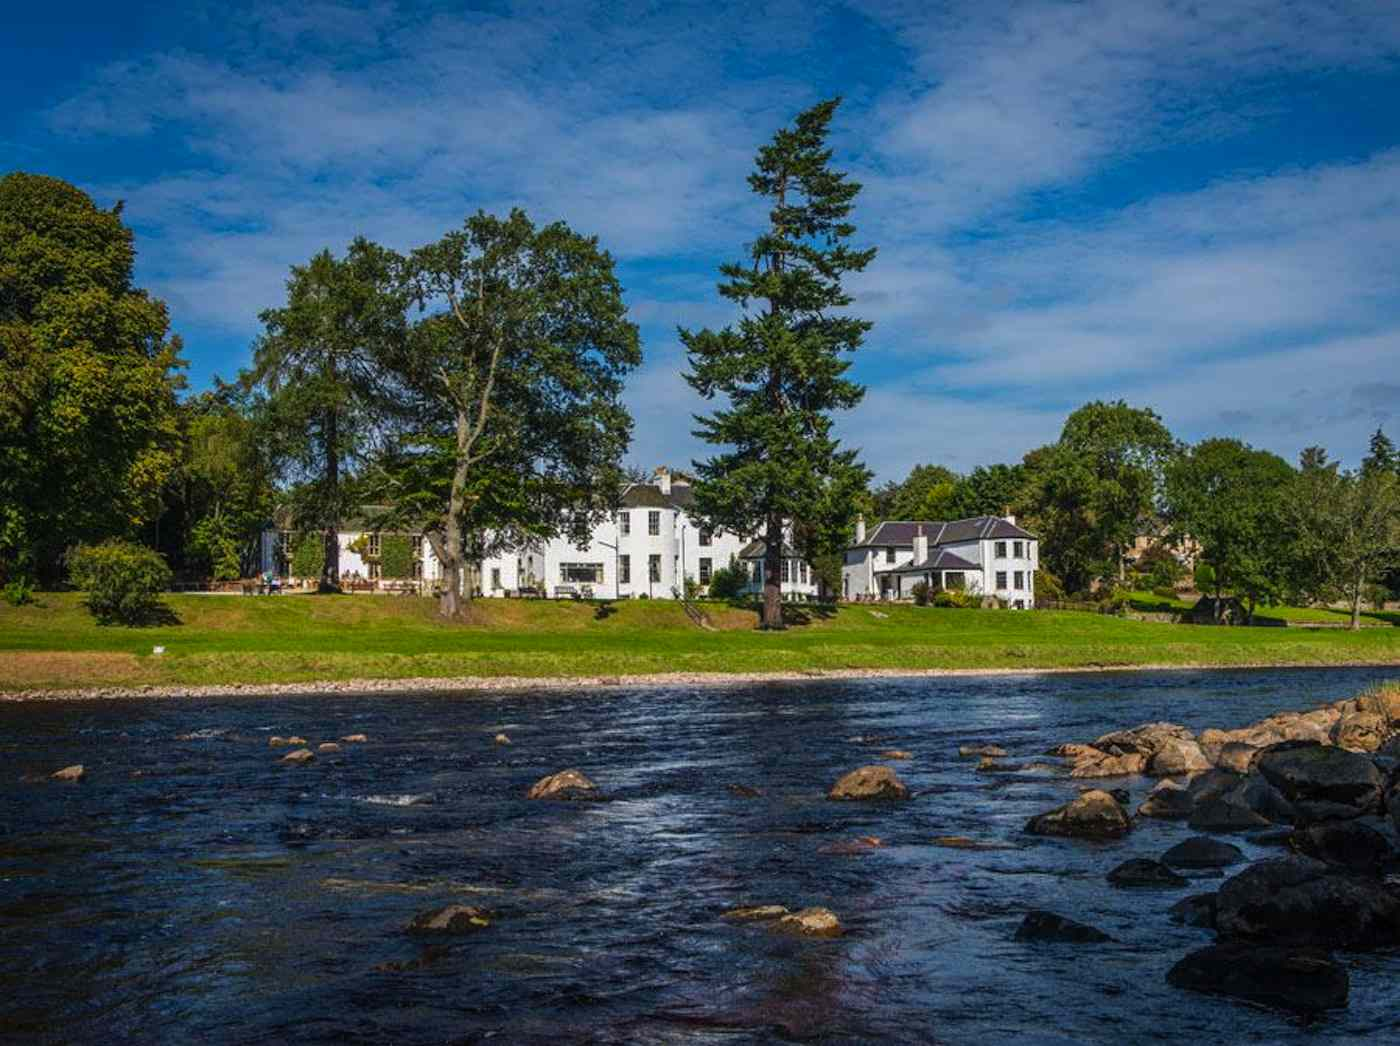 The Banchory Lodge Hotel Front Elevation From Across The River Dee